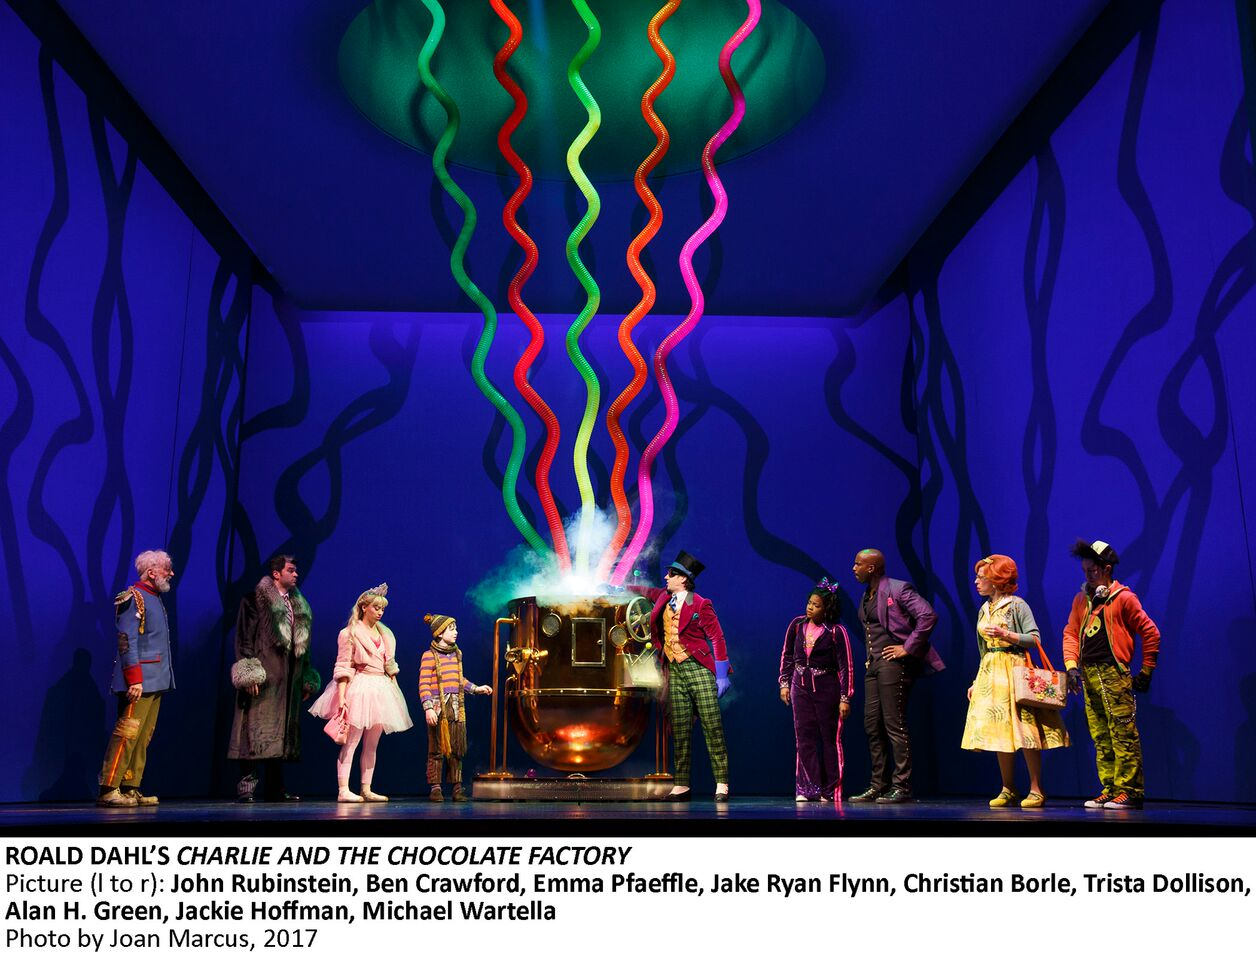 Charlie and the Chocolate Factory – Unsweetened